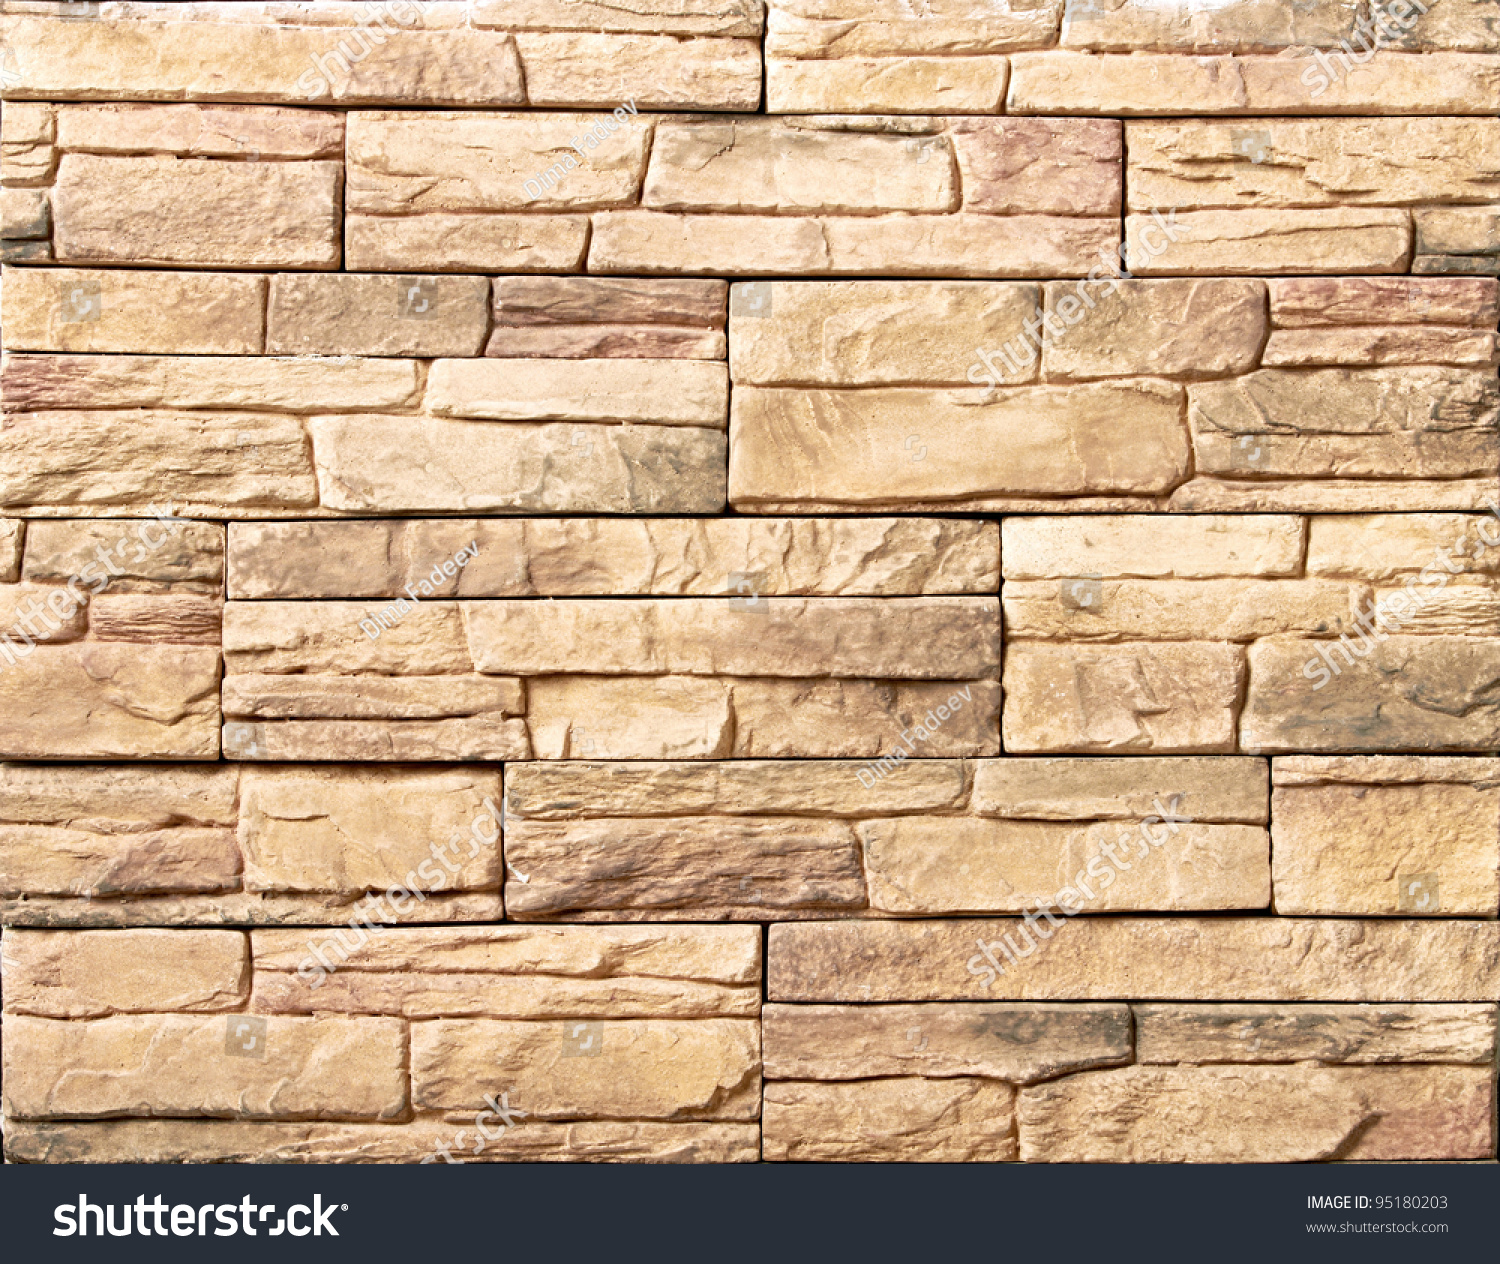 brick wall design as mortar background texture preview save to a lightbox